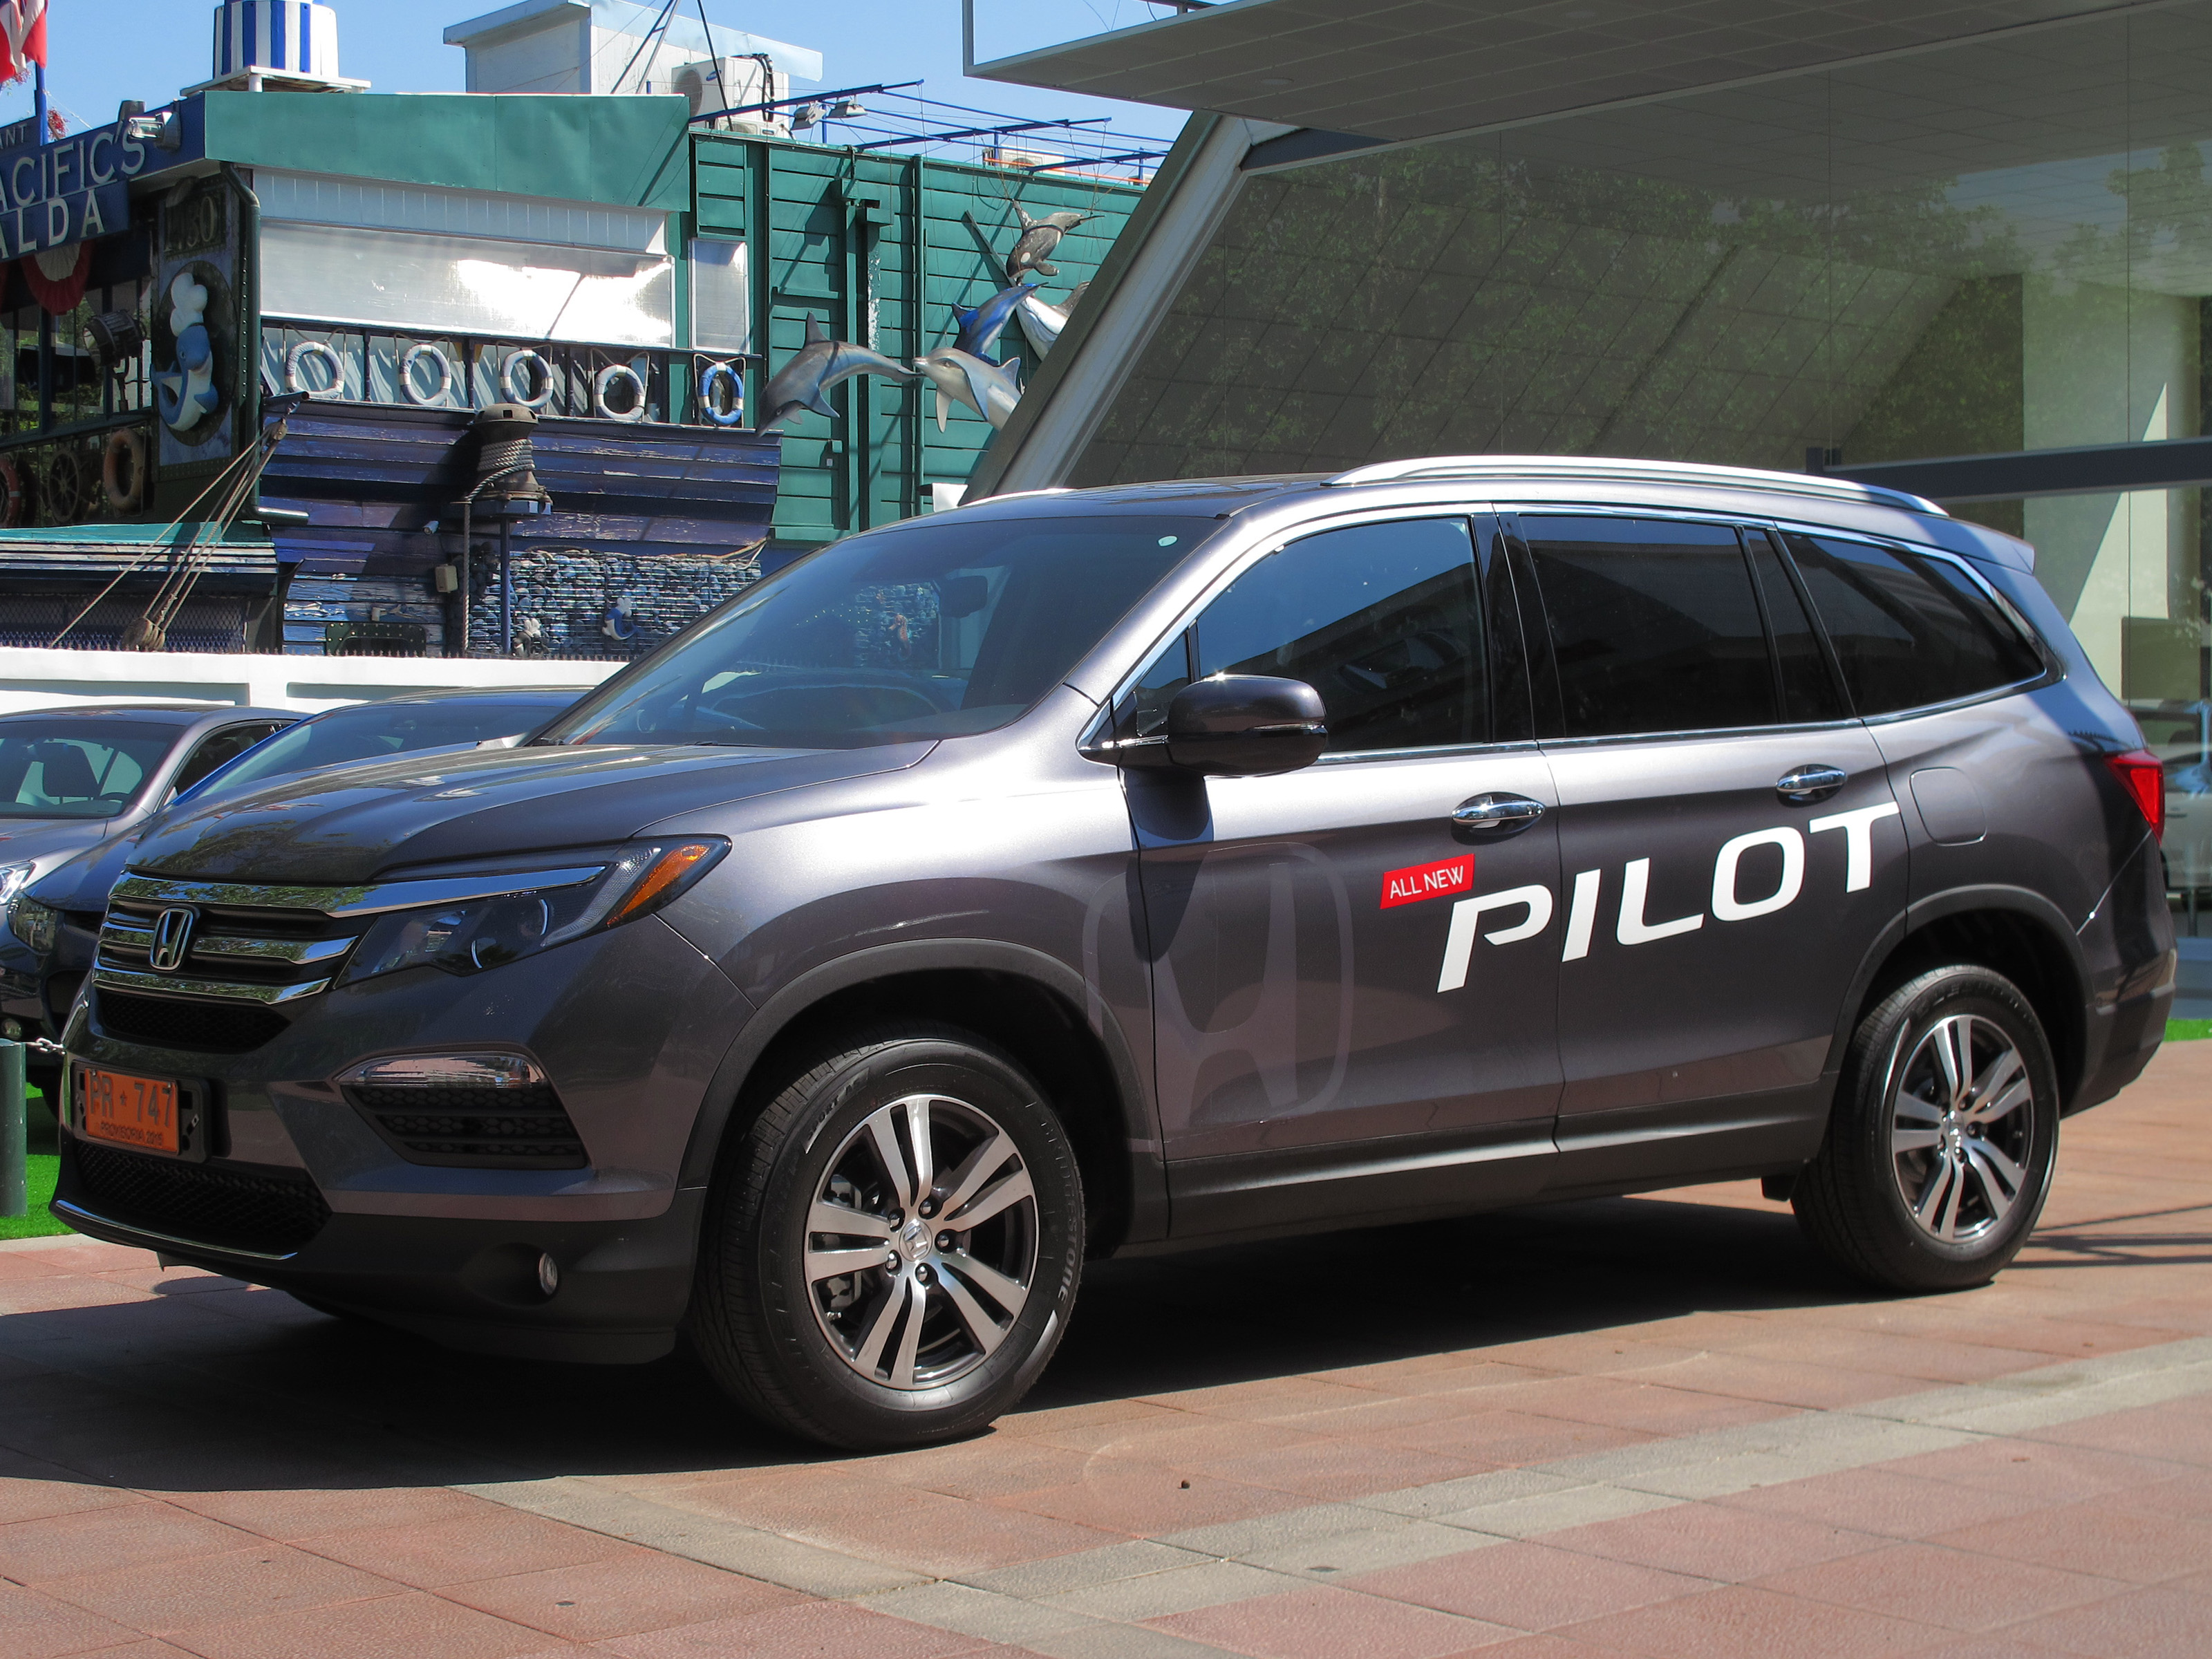 2020 Honda Passport: Design, Specs, Equipment, Price >> Honda Pilot Wikipedia